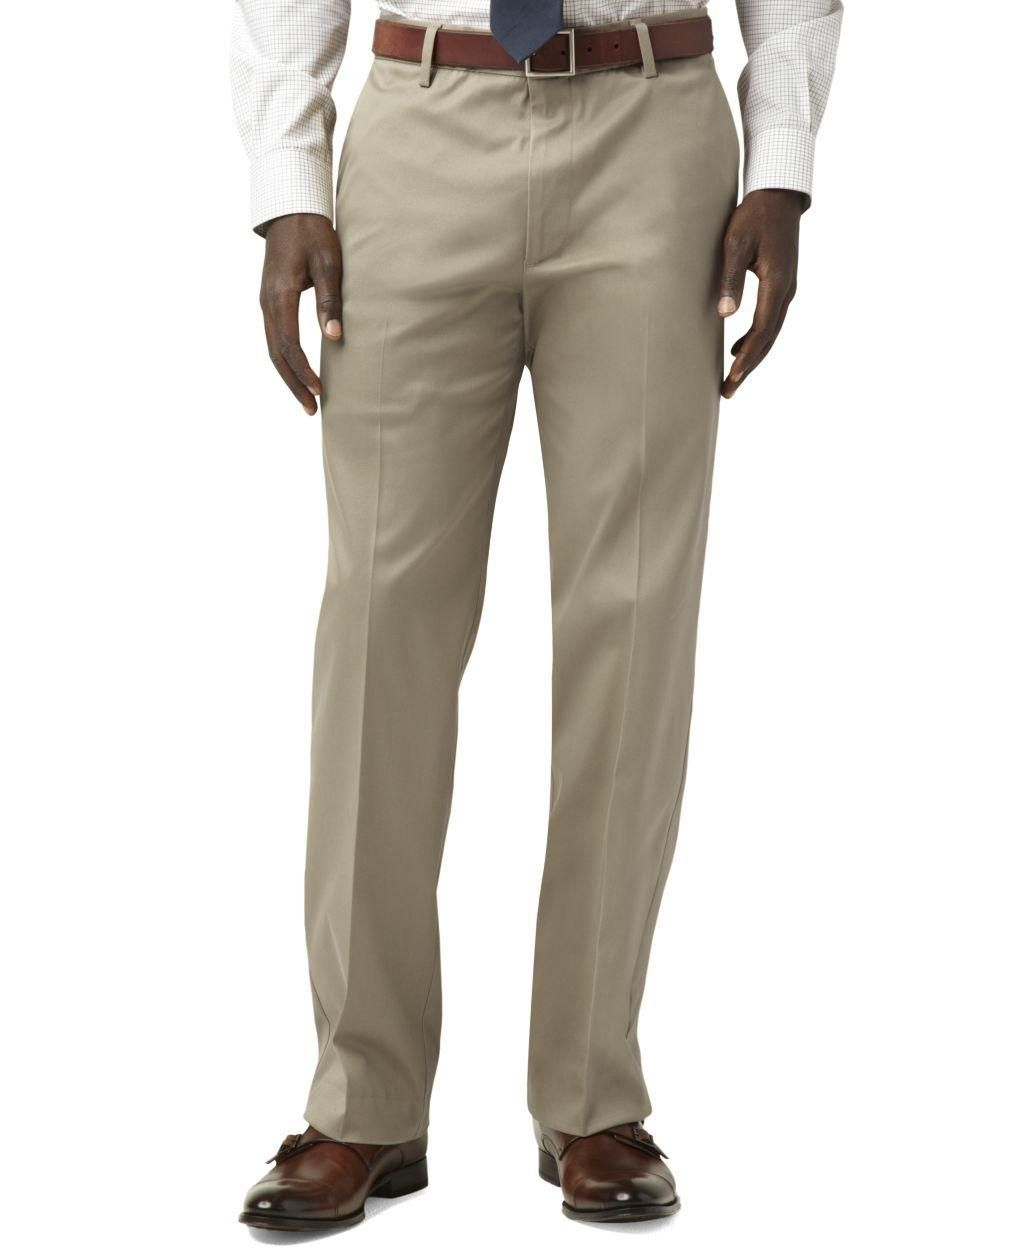 Dockers Iron Free Straight Fit Flat Front Pants - Brought to you by Avarsha.com